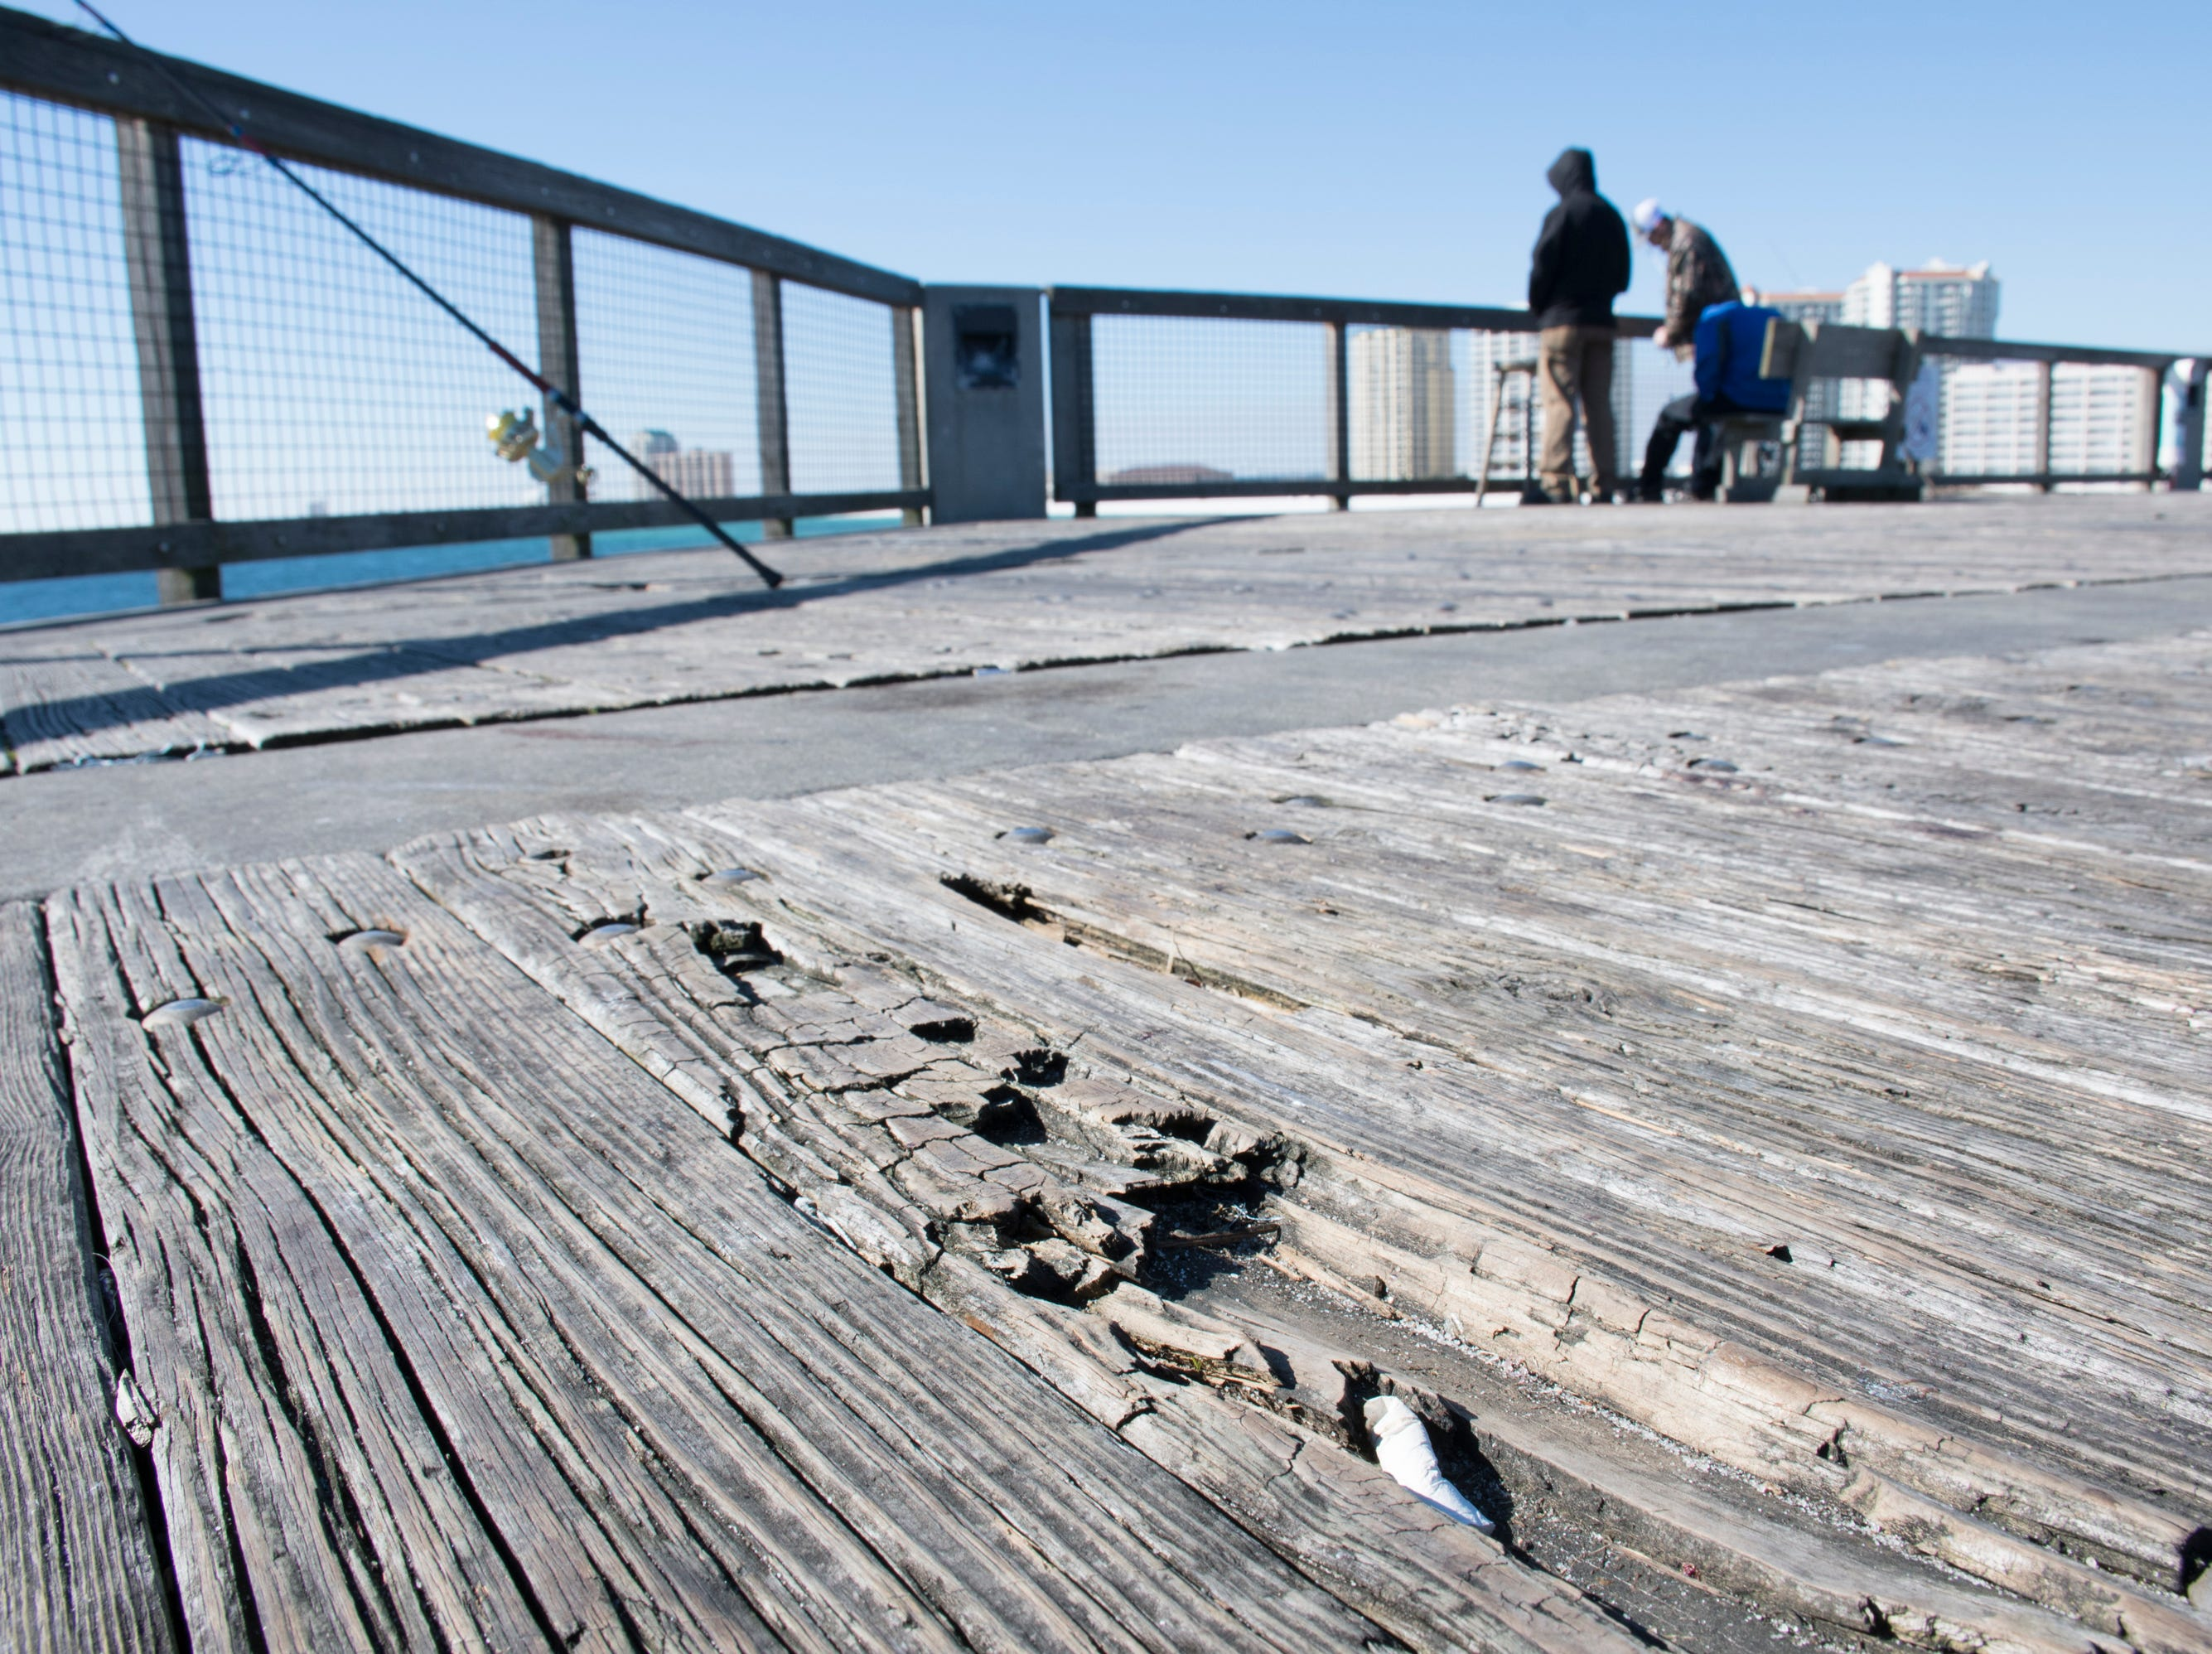 Anglers fish from the pier in Navarre on Friday, January 11, 2019.  The pier is slated to get a major makeover this year complete with new decking material.